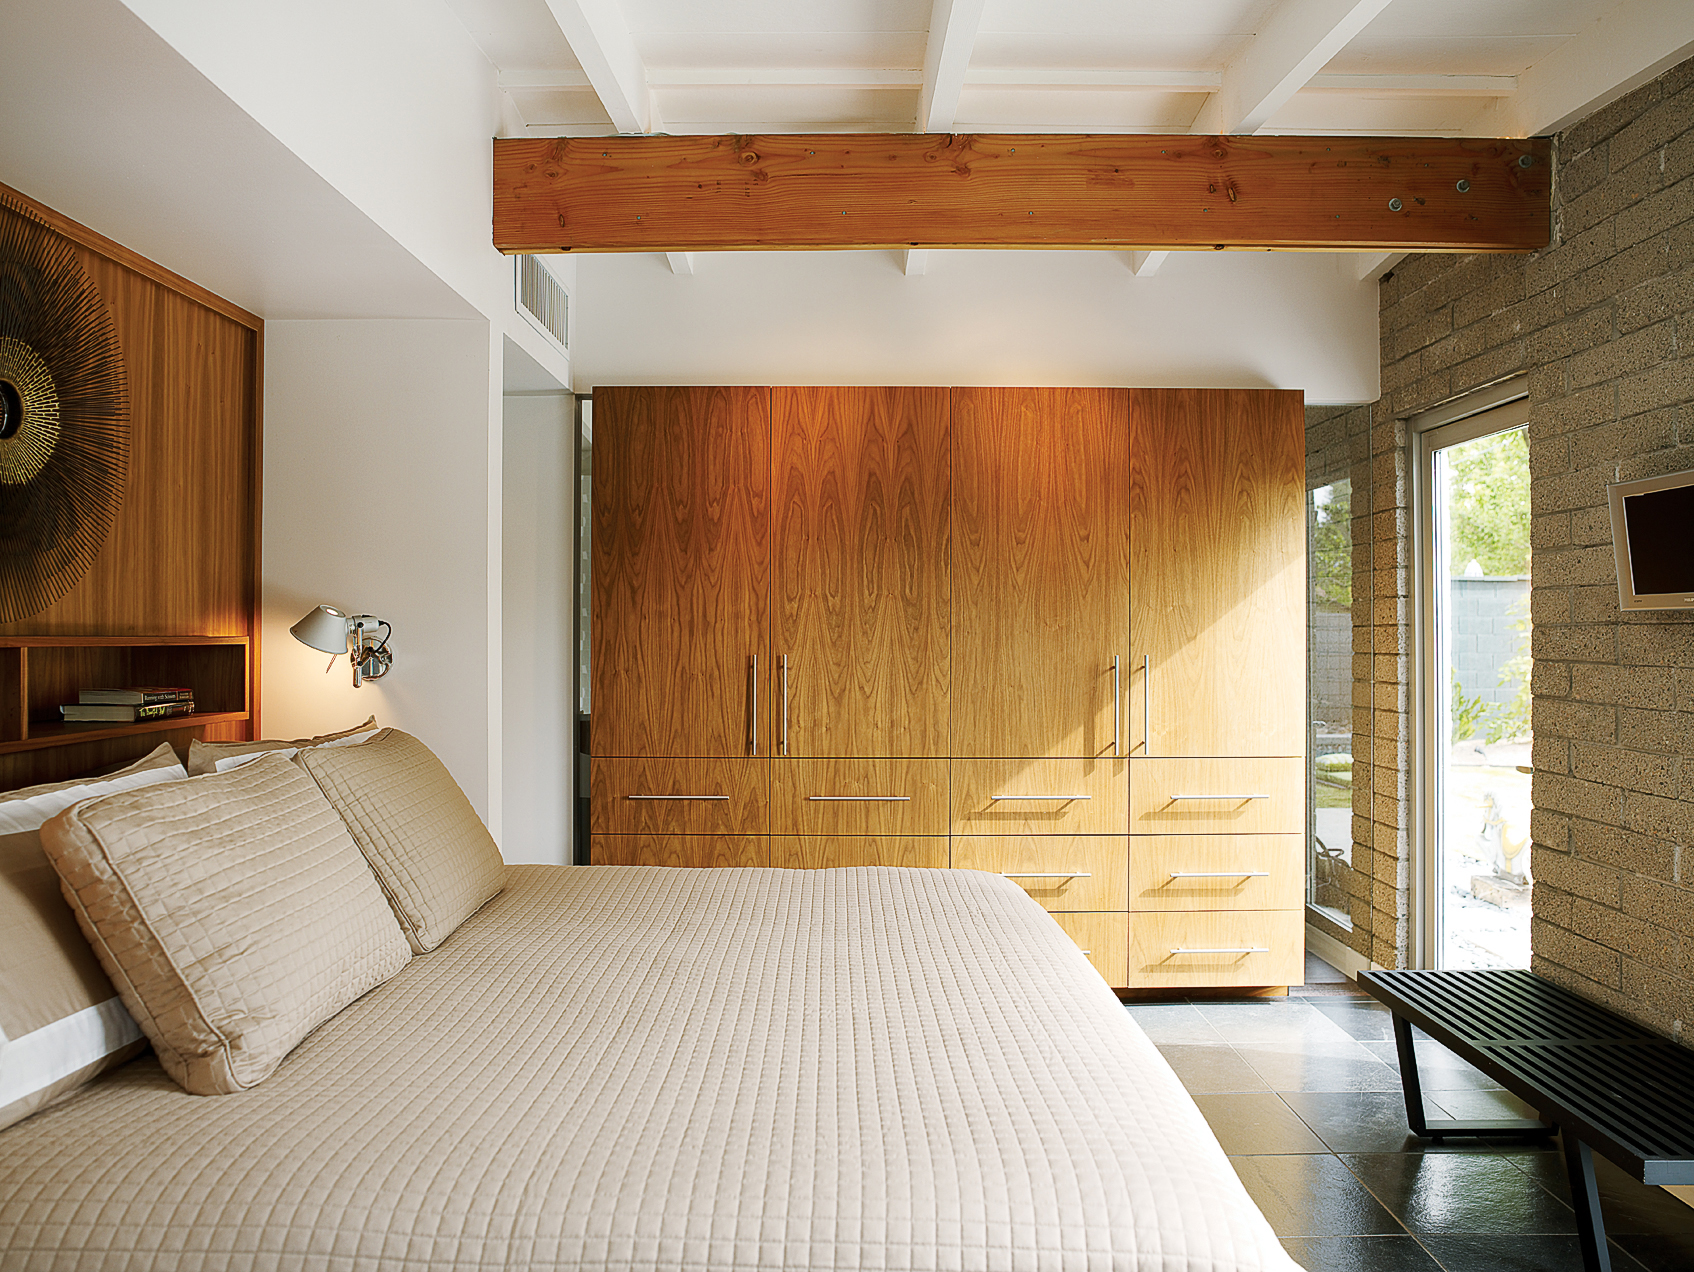 20 Design Tips for Small Bedrooms - Sunset Magazine